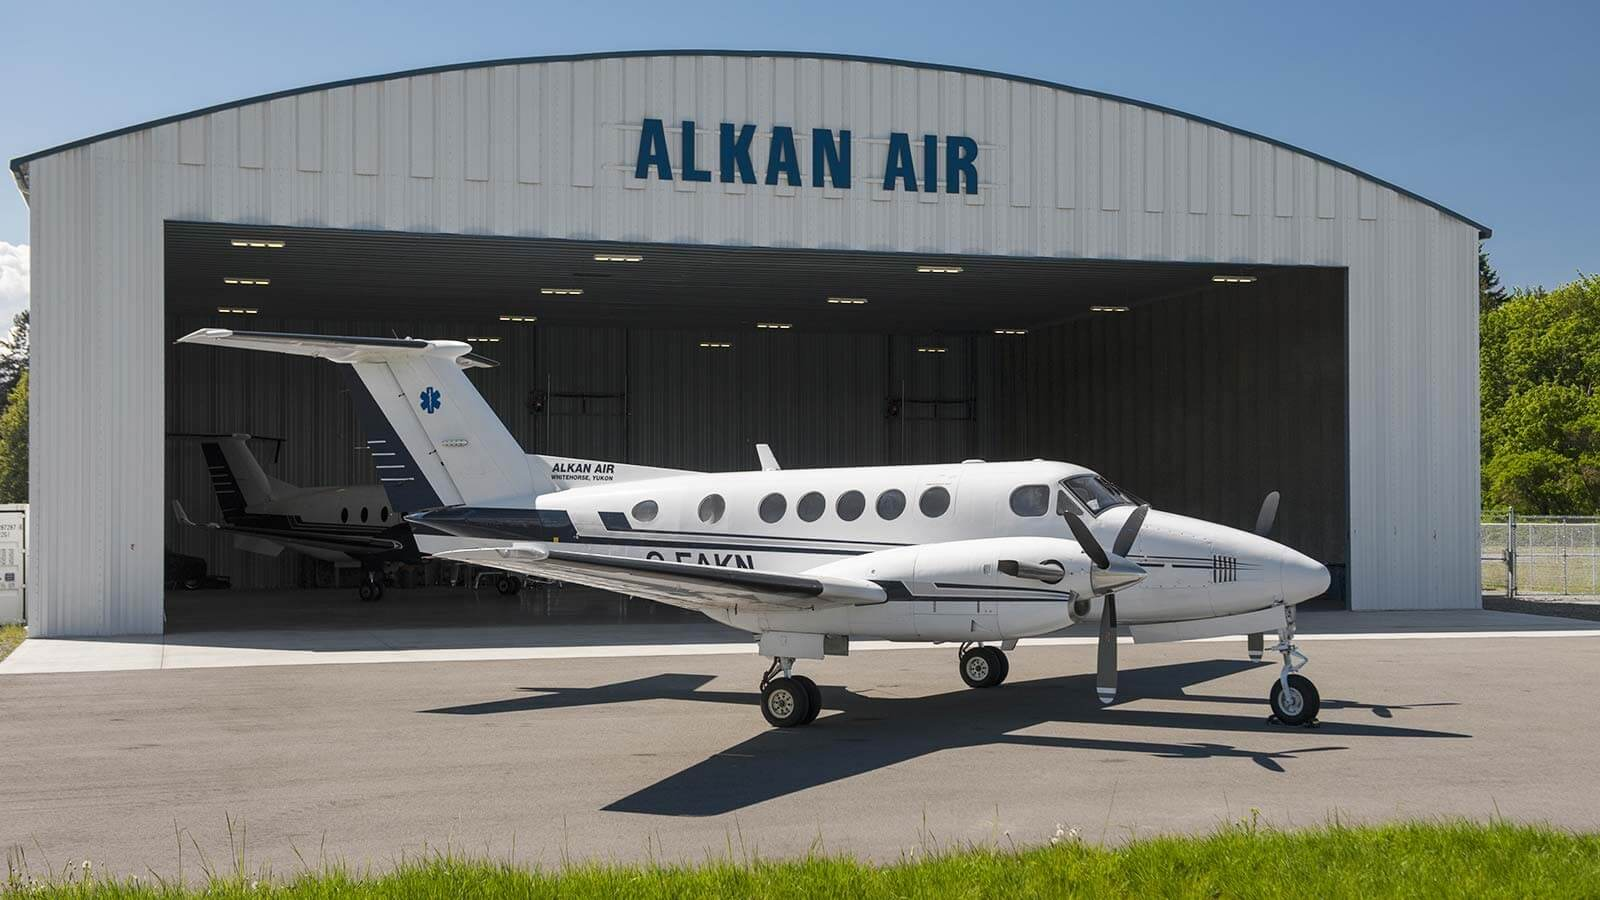 Alkan Air provides update on August 6 aircraft accident